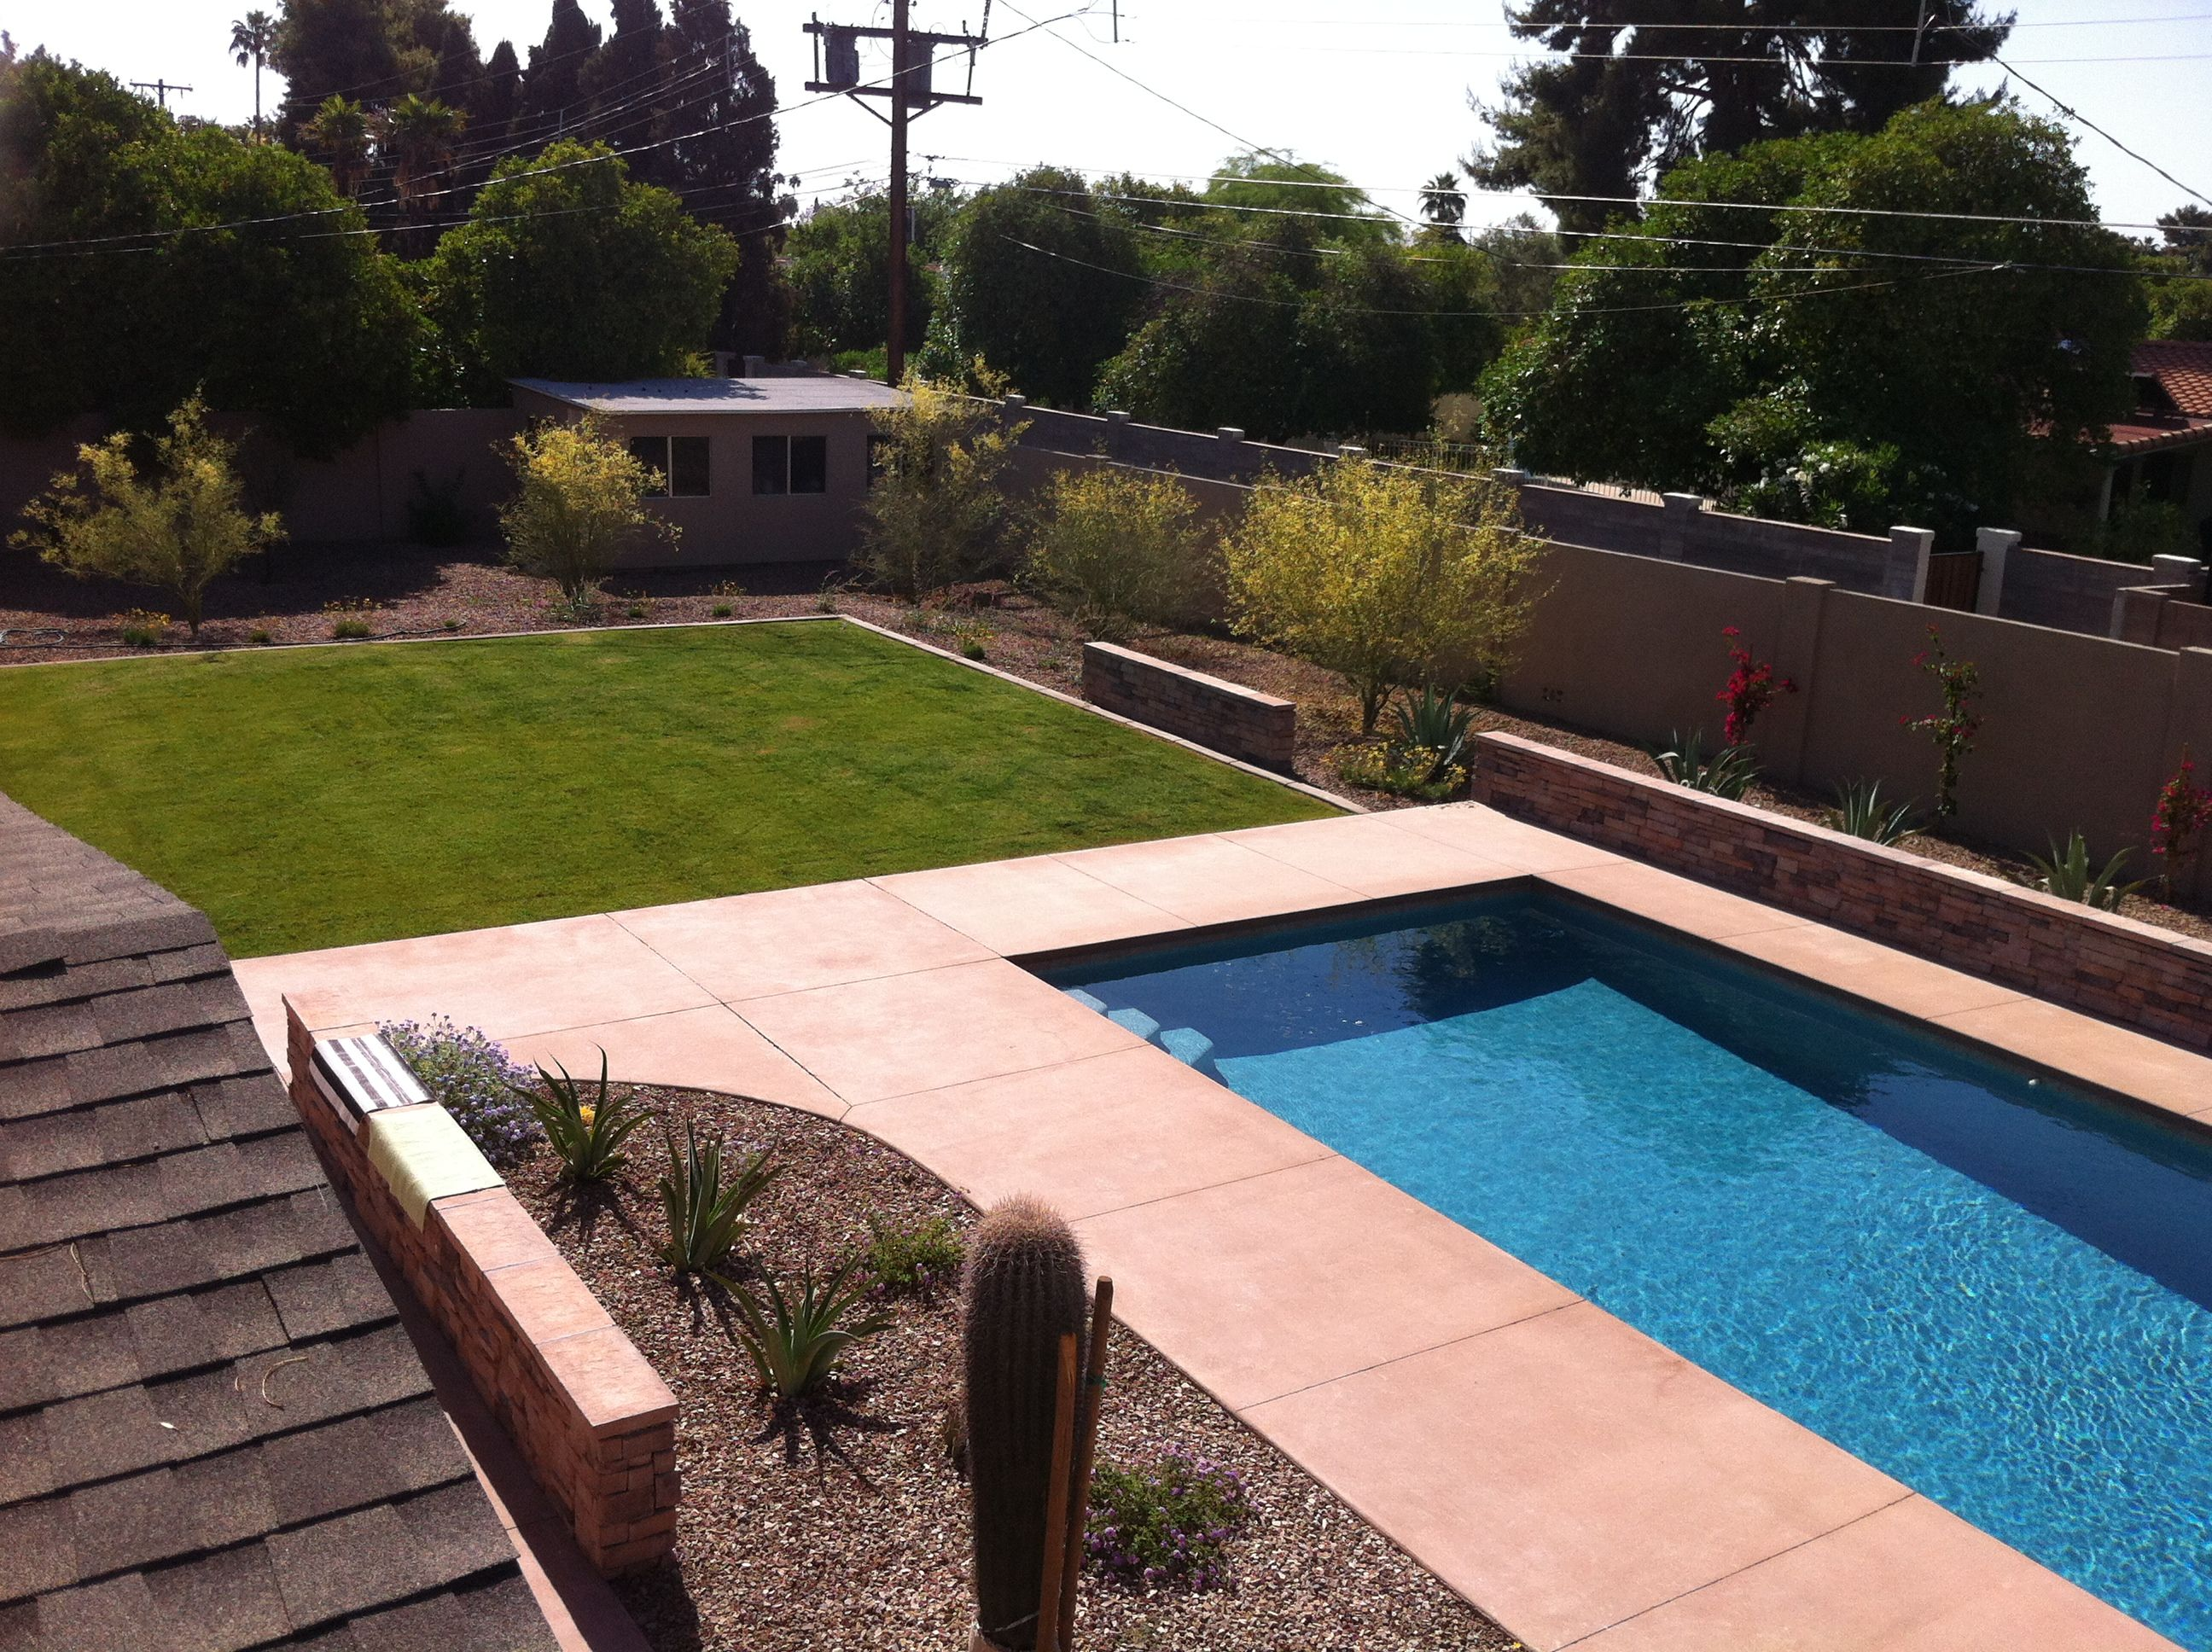 Garden Ideas Remodeling garden design: garden design with iii millennium designs swimming